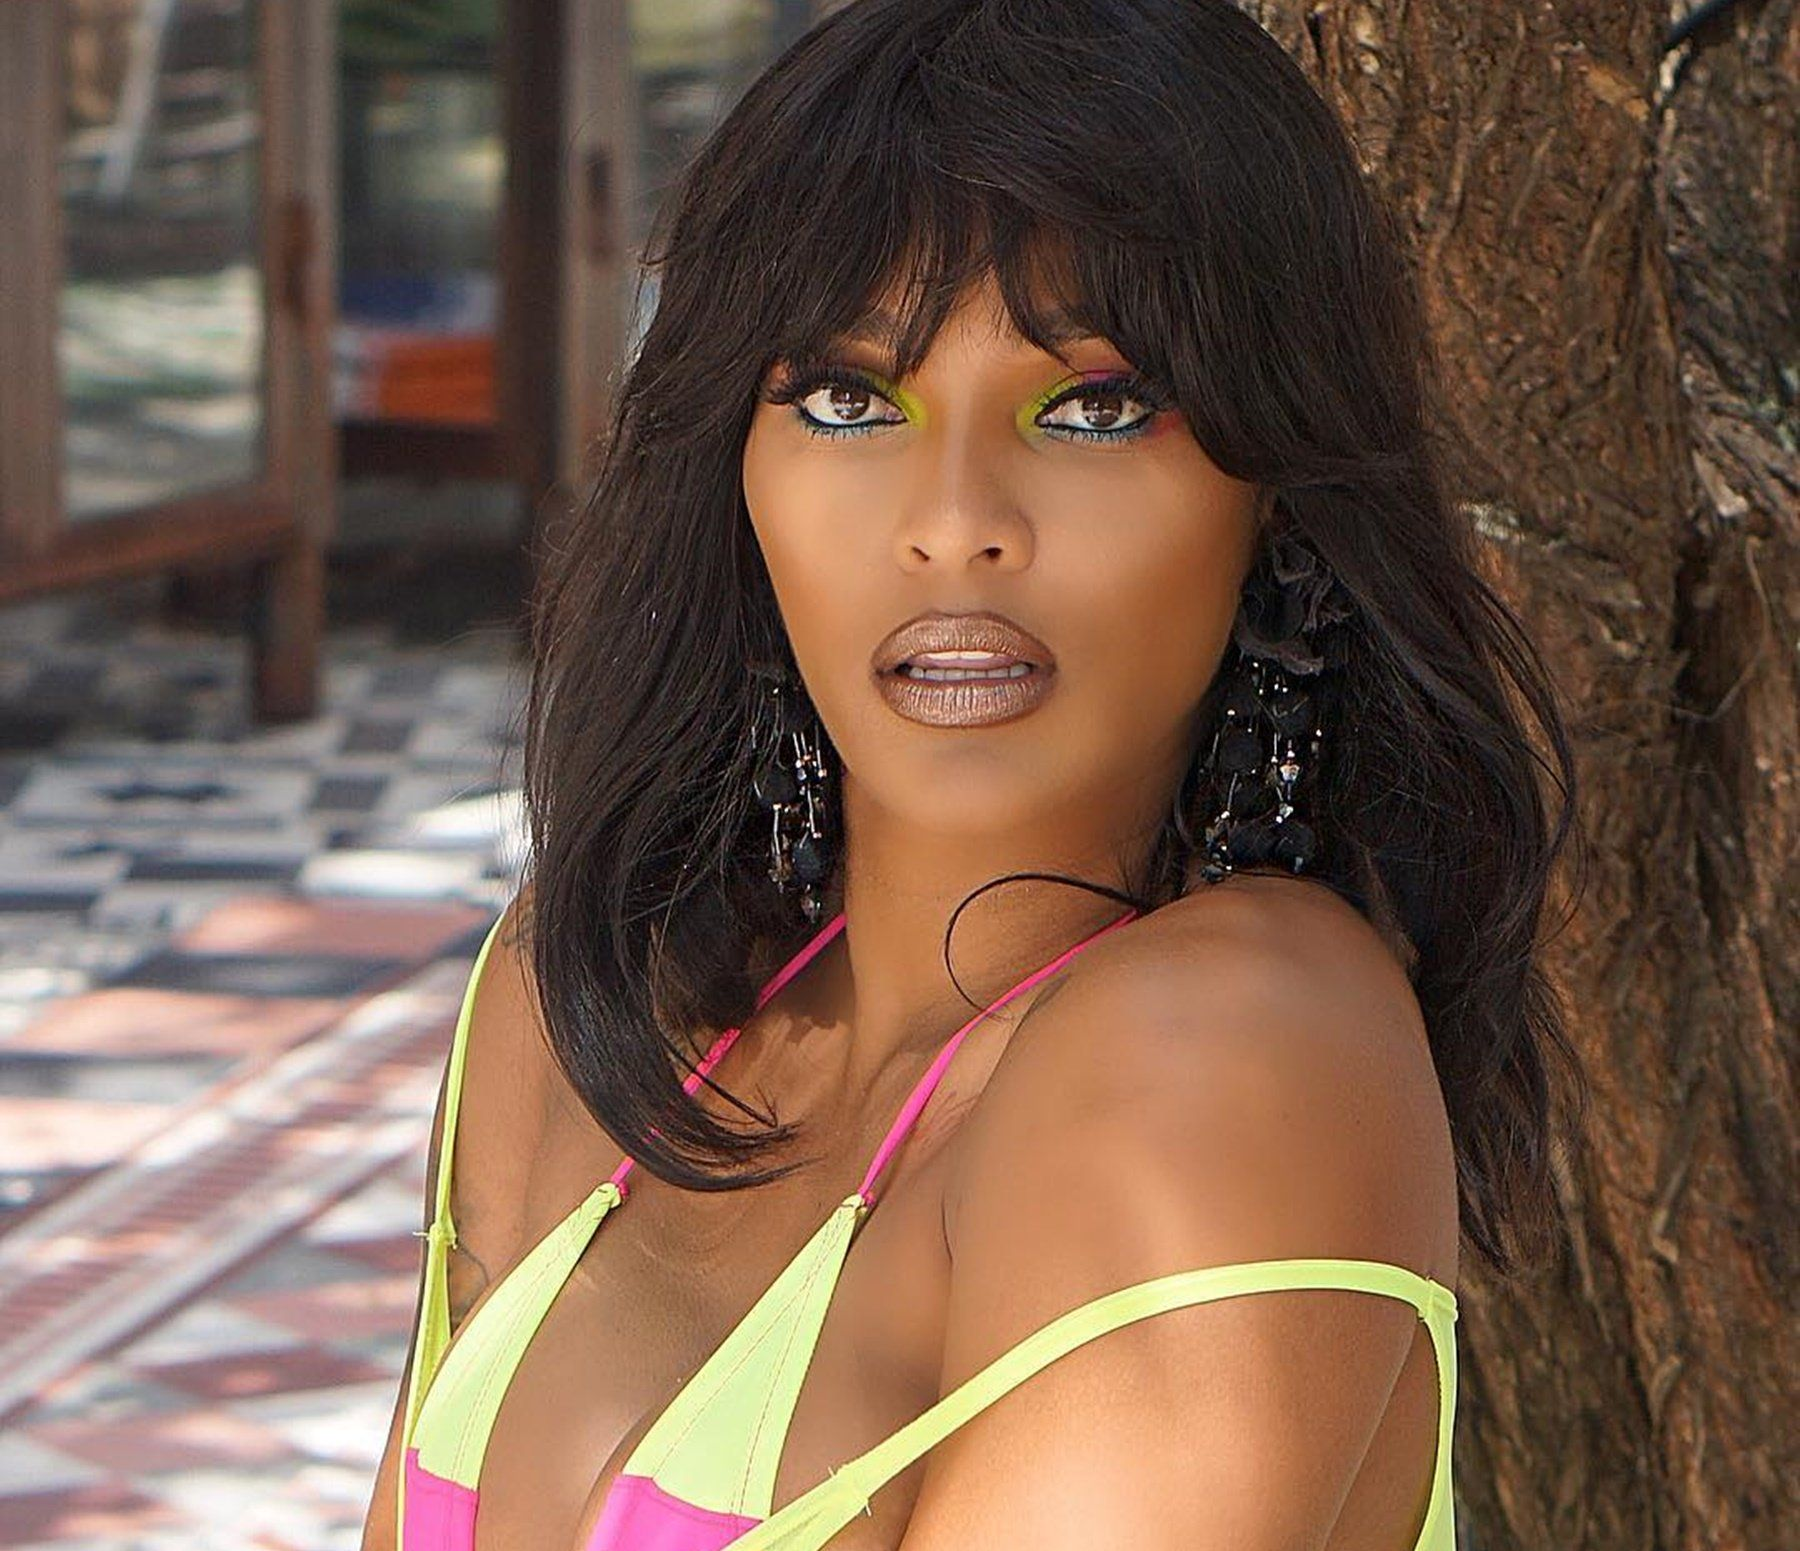 semen-gif-joseline-hernandez-magazine-xxx-with-caption